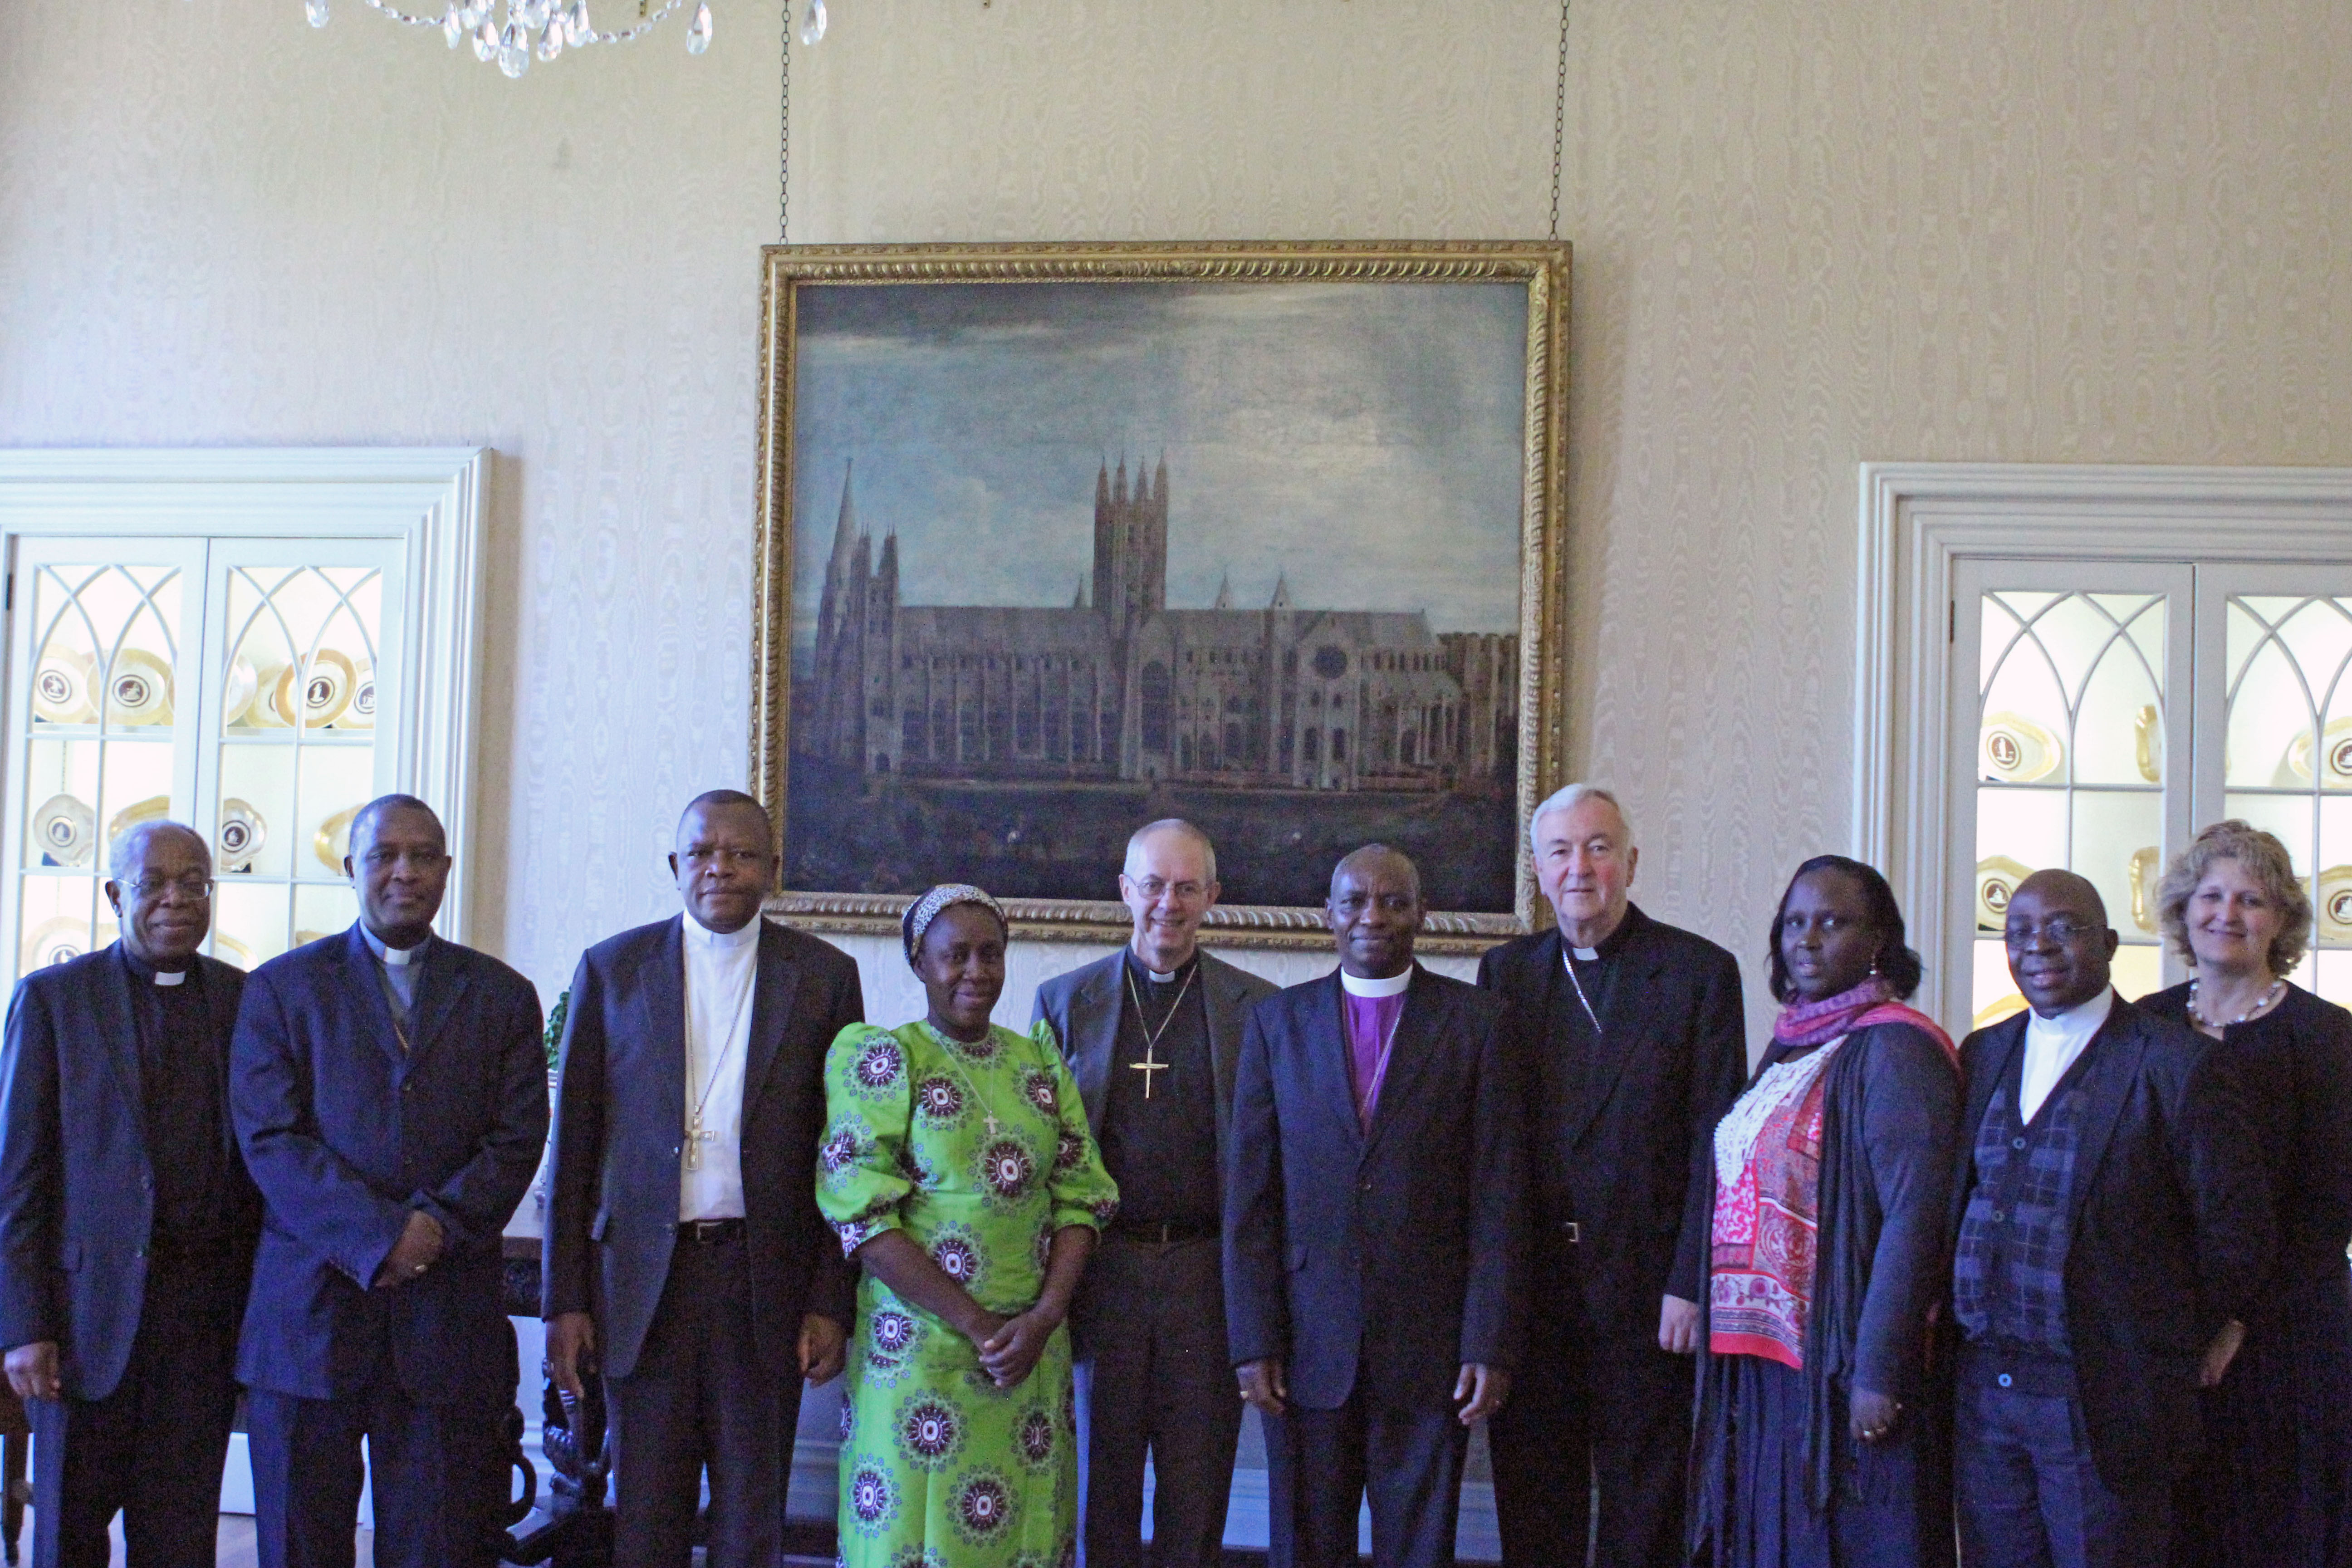 Archbishop of Canterbury Justin Welby and Cardinal Vincent Nichols of Westminster met with Anglican and Roman Catholic leaders from the Democratic Republic of Congo, Burundi, and Rwanda at Lambeth Palace